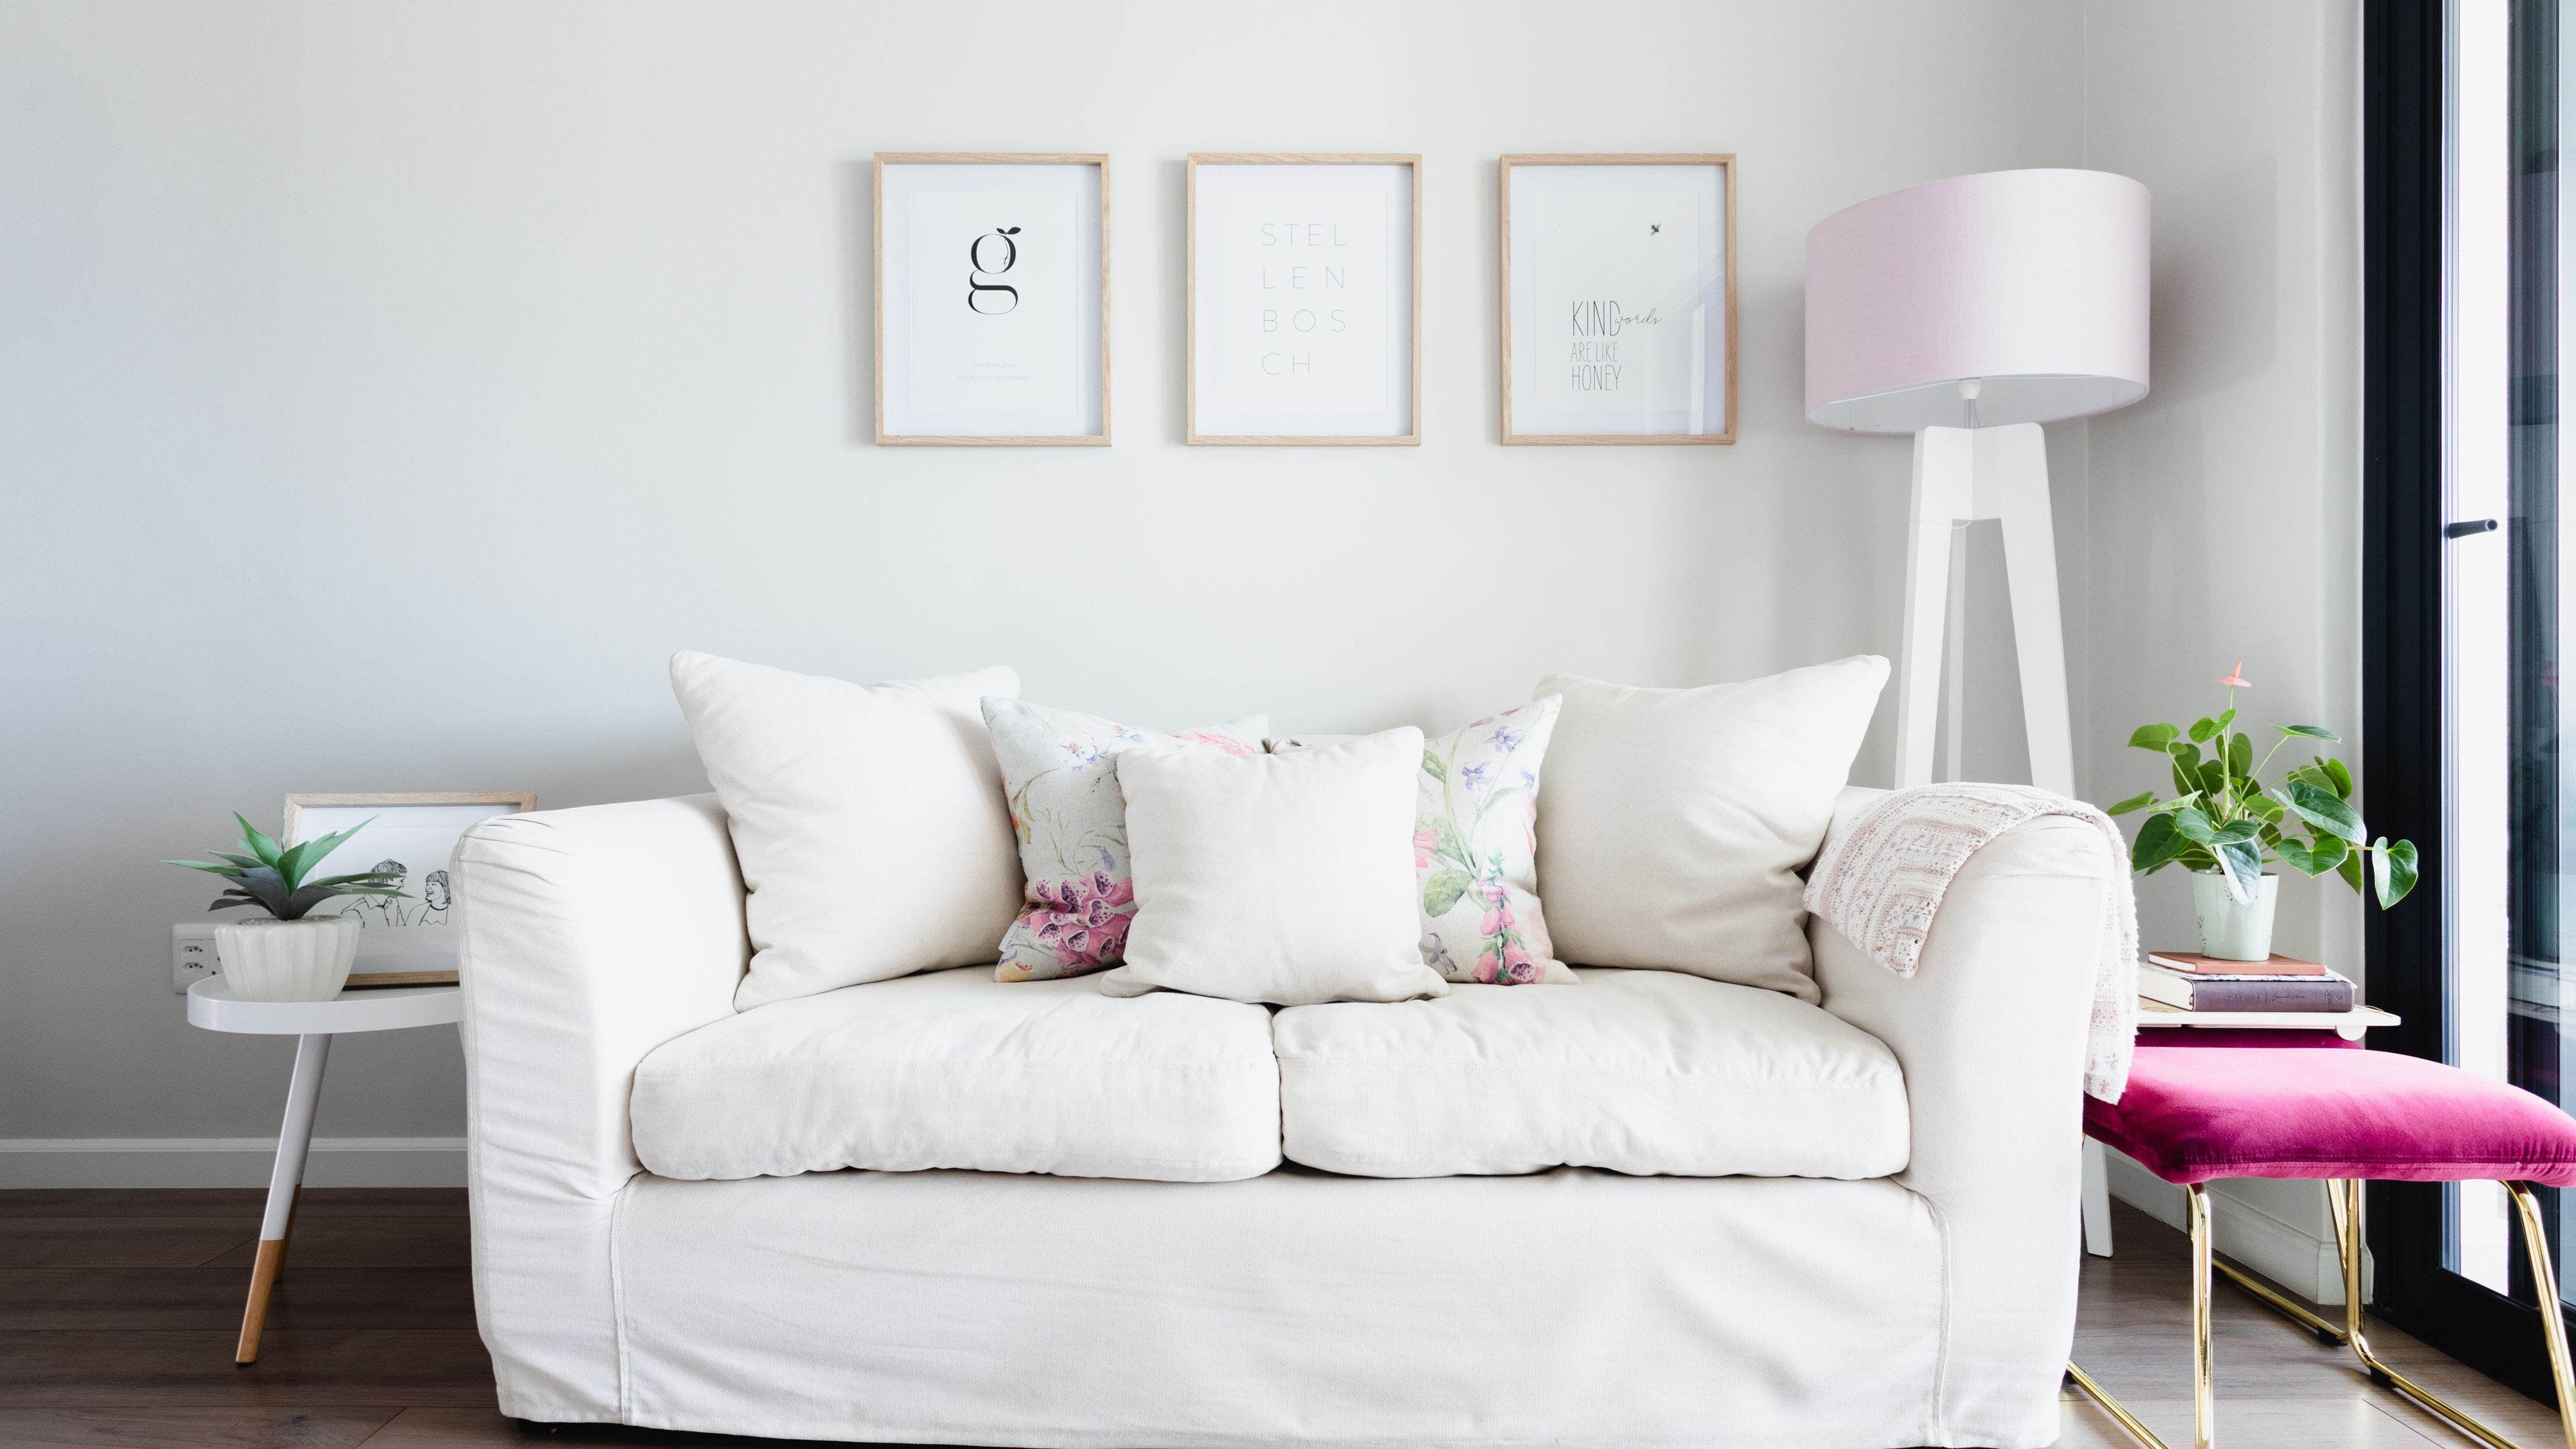 11 Tips for Buying a Great Couch